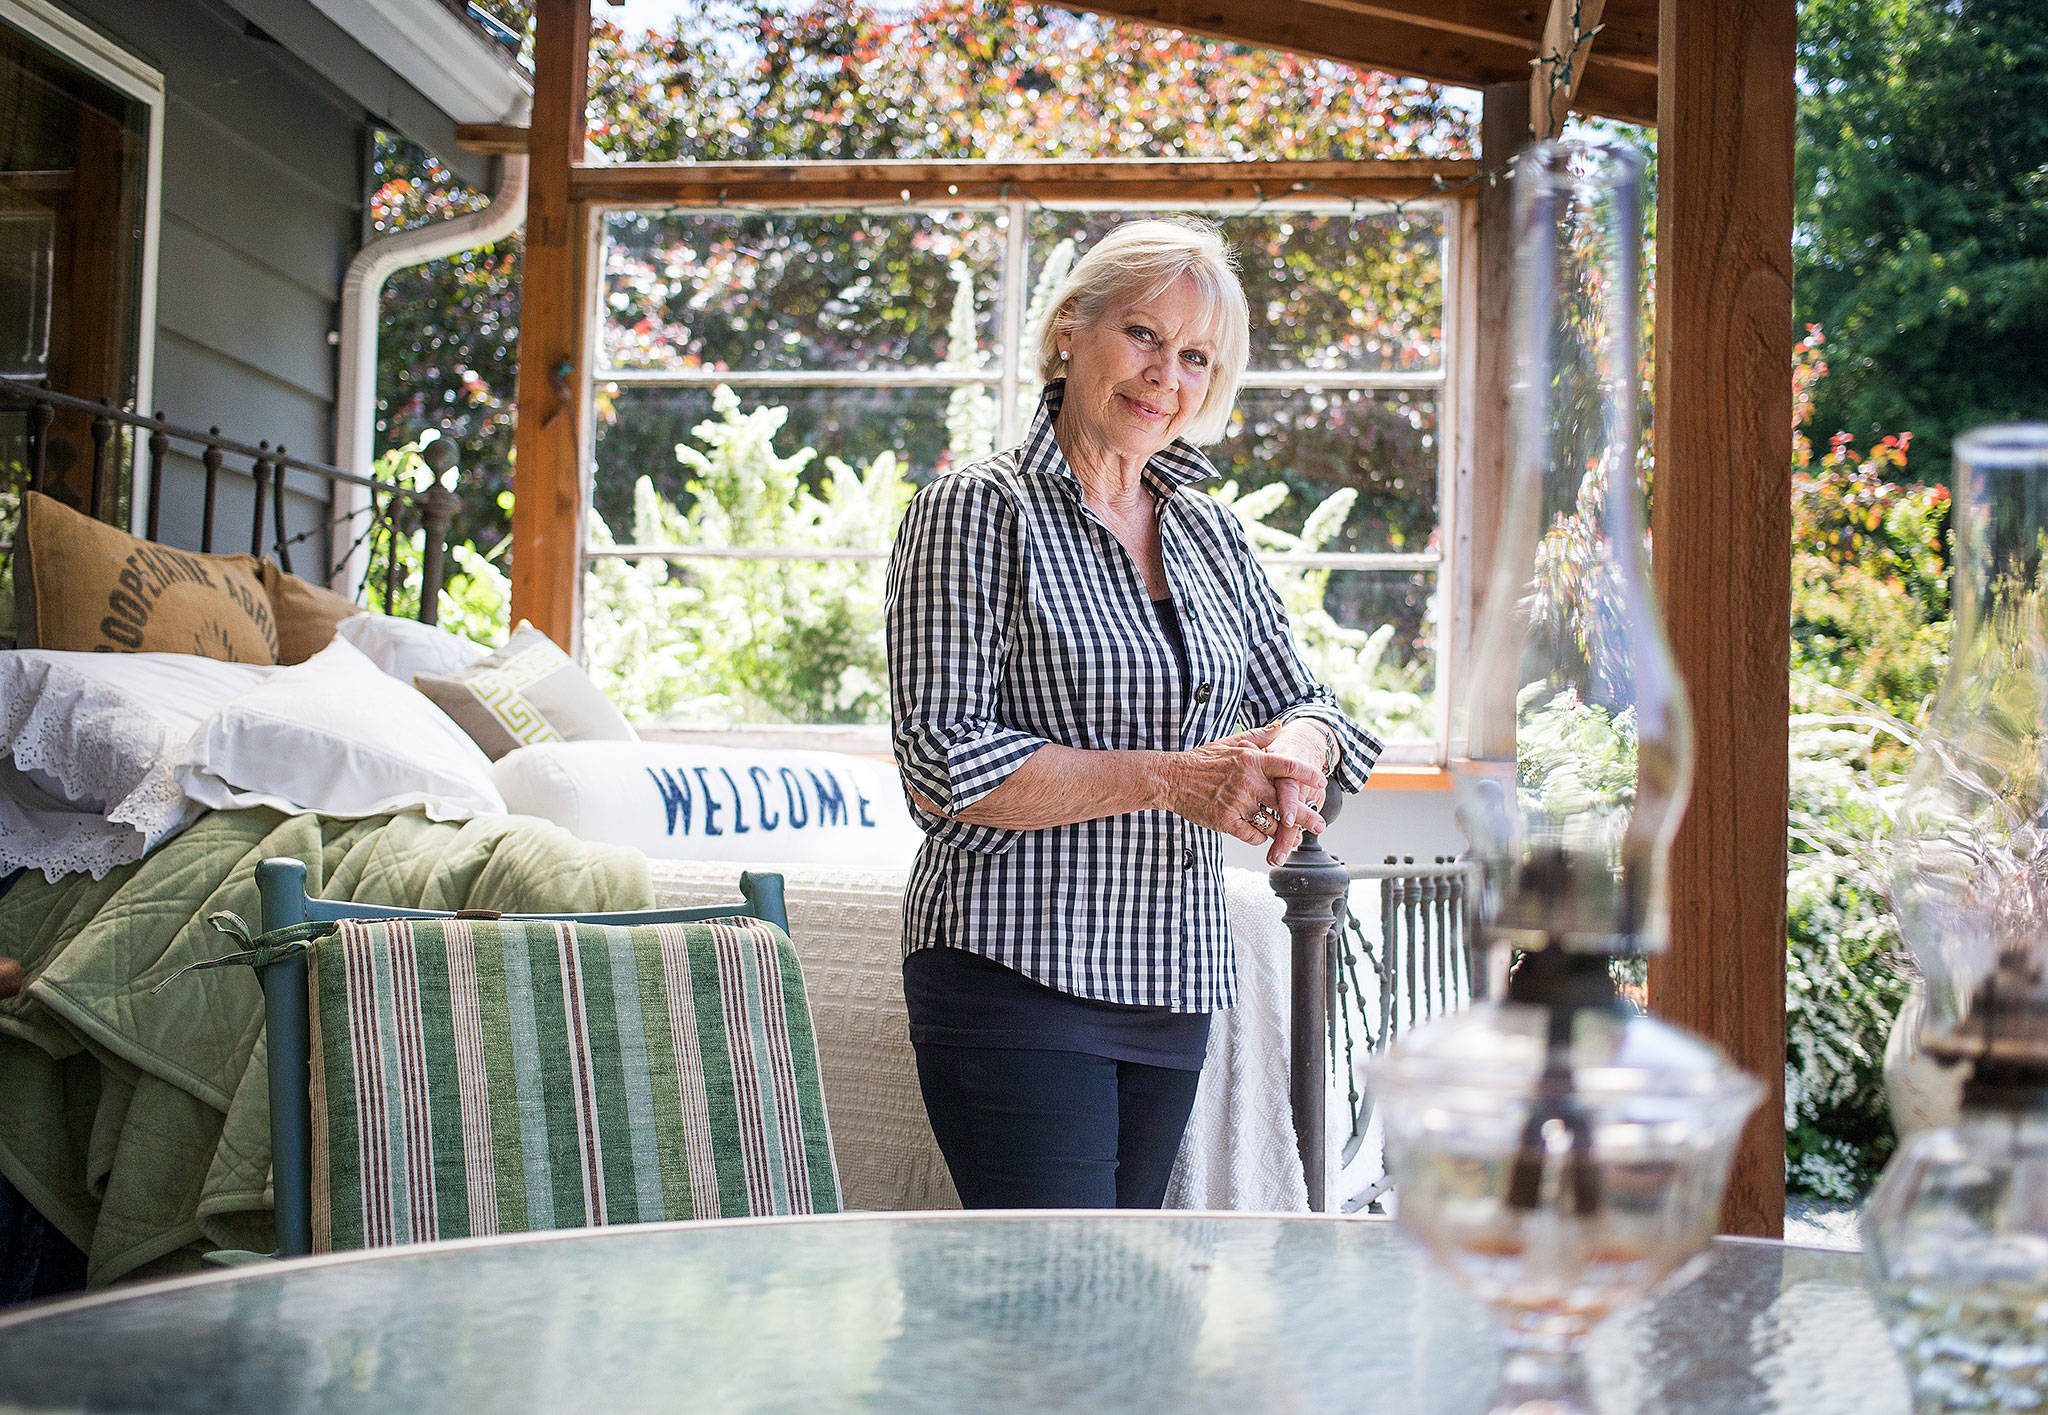 Bedroom furniture on a deck is one of the many touches Ellerie Cain, interior designer and owner of Ellerie's River Cottages, adds to her B&B cottages near the Stillaguamish River and Darrington. (Andy Bronson / The Herald)